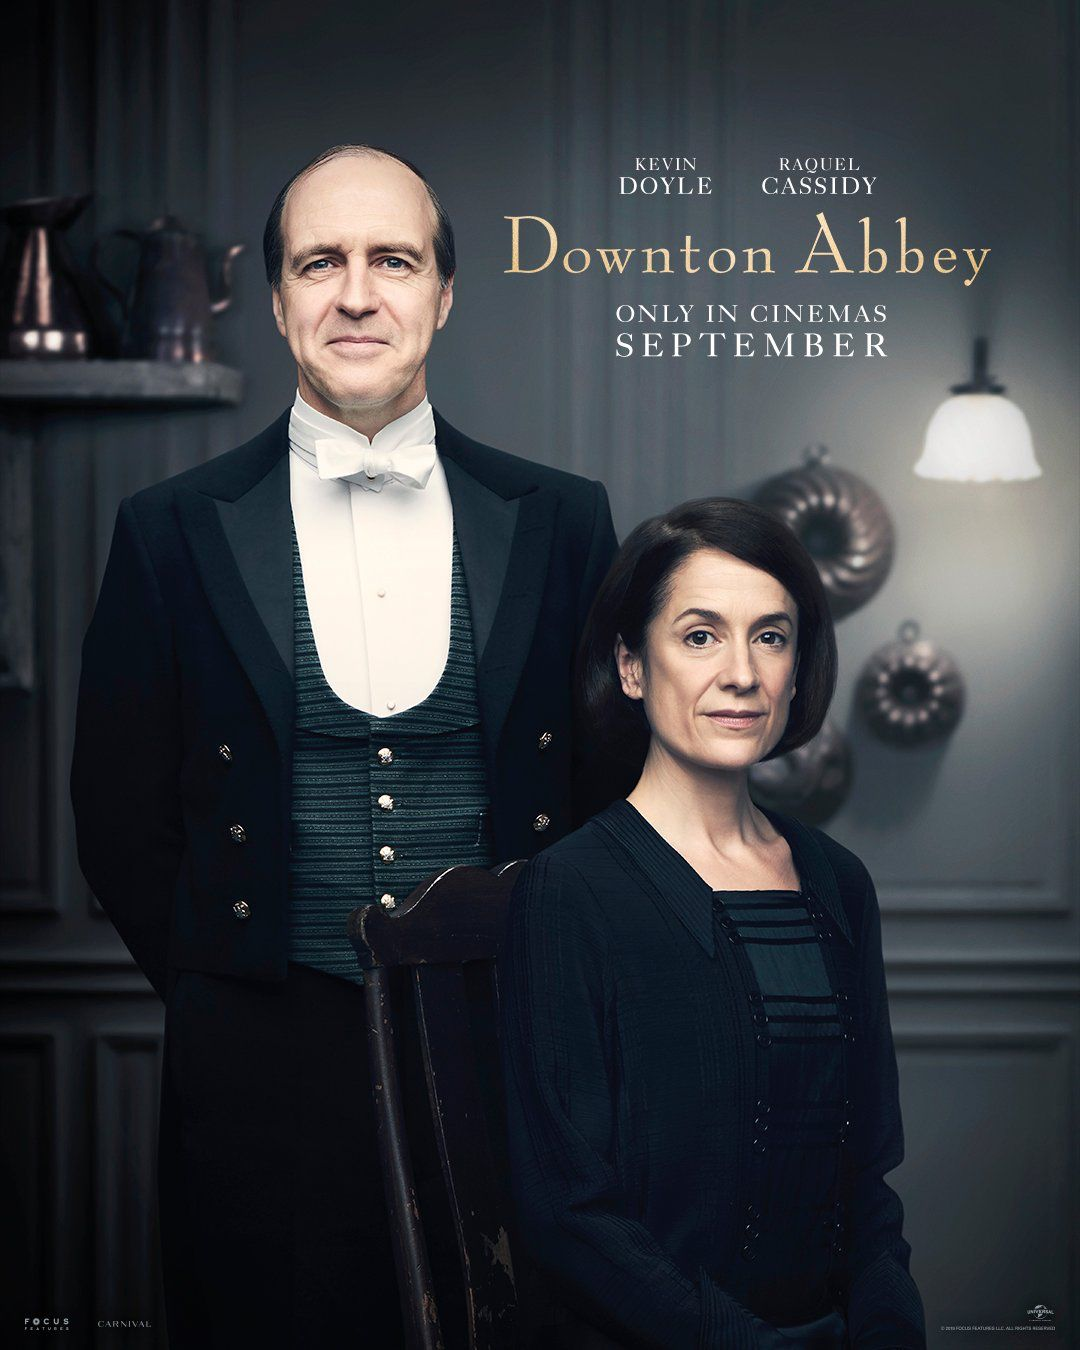 Downton Abbey movie poster in 2019 Downton abbey movie